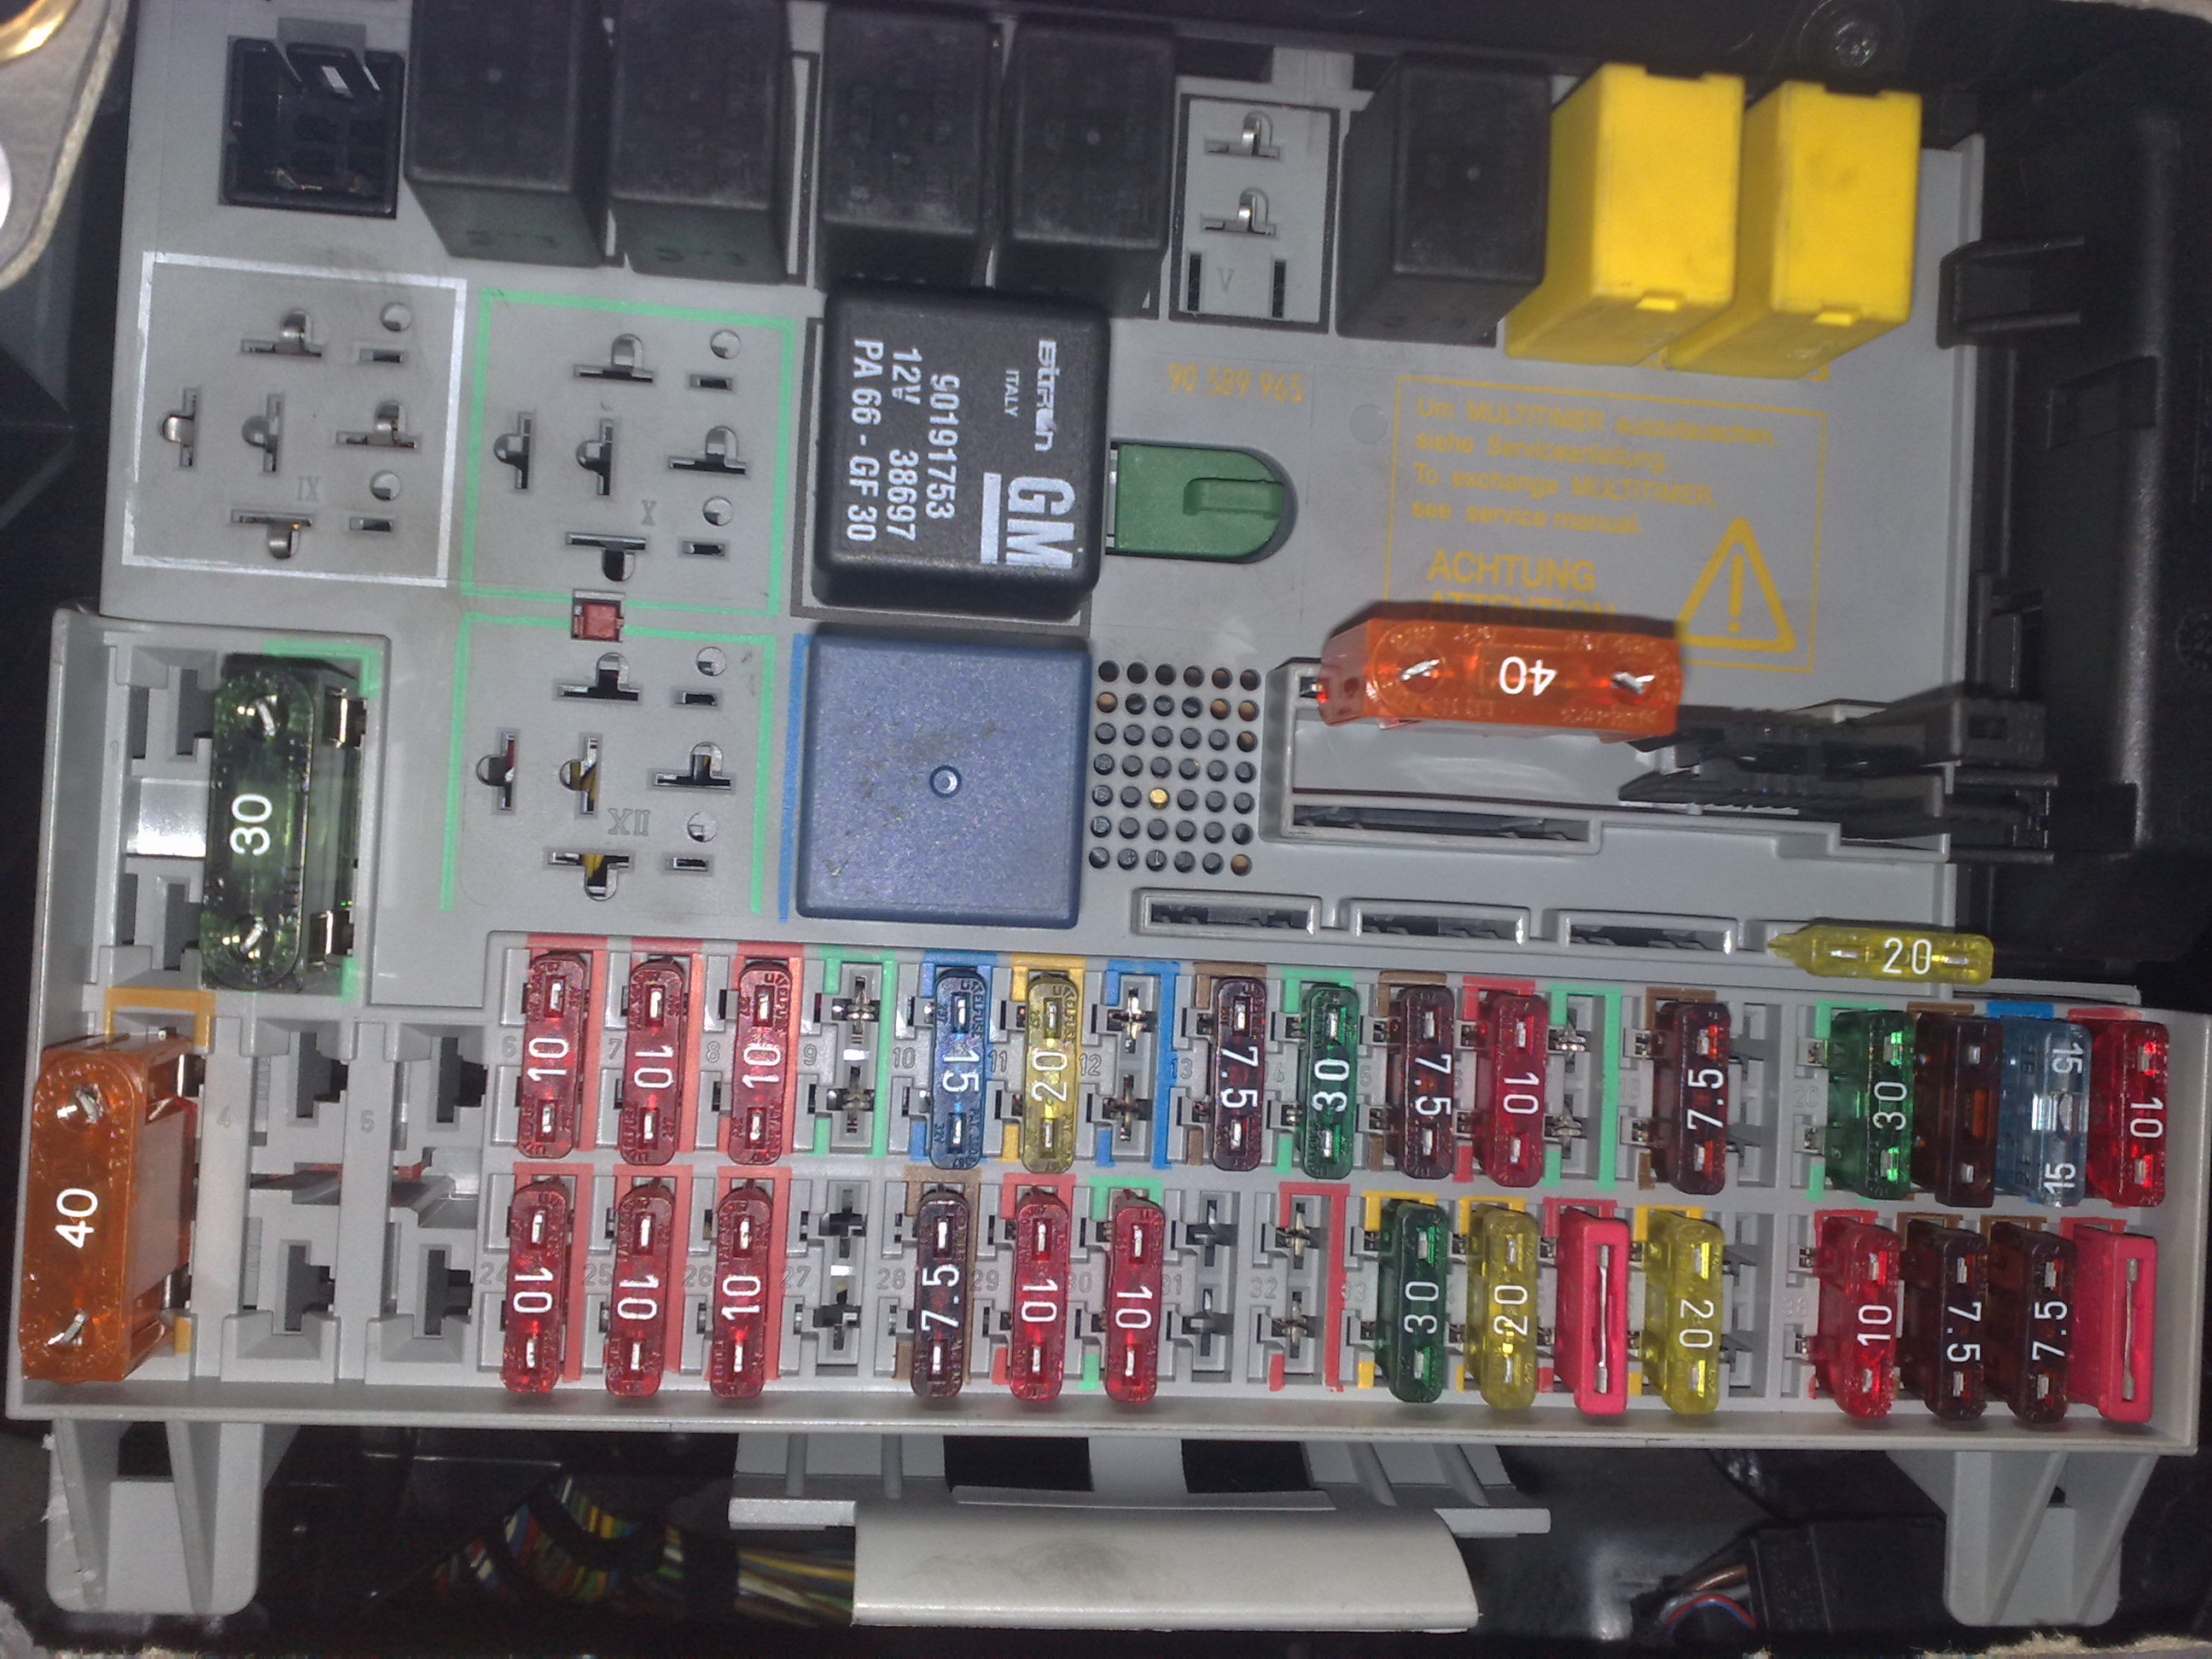 20112011 Mercury Milan Fuse Box Auto Electrical Wiring Diagram 2005 Lincoln Town Car Location 2006 Zephyr